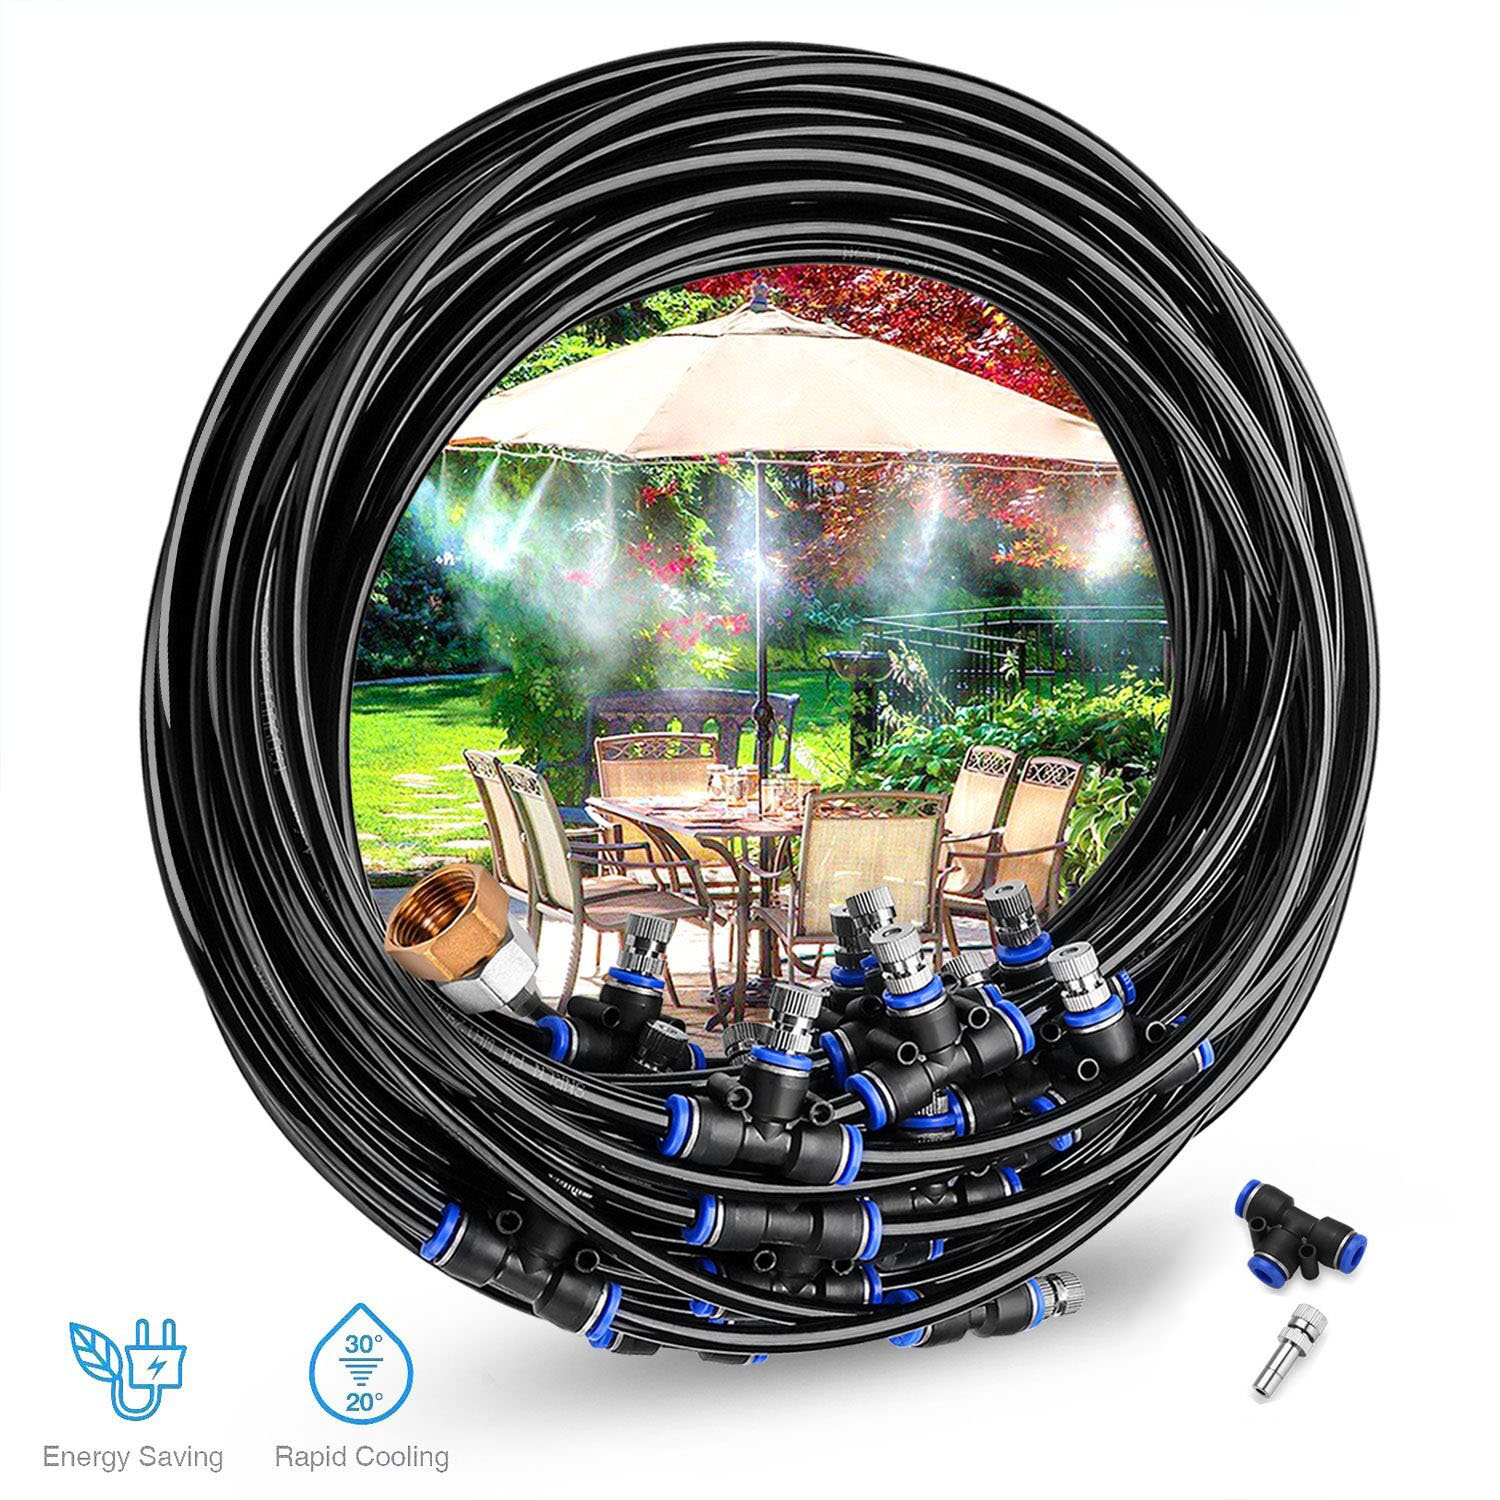 [Upgraded 2018] Gesentur Misting Cooling System - 42.6ft(13M)Misting Line + 23Metal Mist Nozzles + a Brass Adapter(3/4) for Outdoor Patio Garden Home Irrigation Trampoline